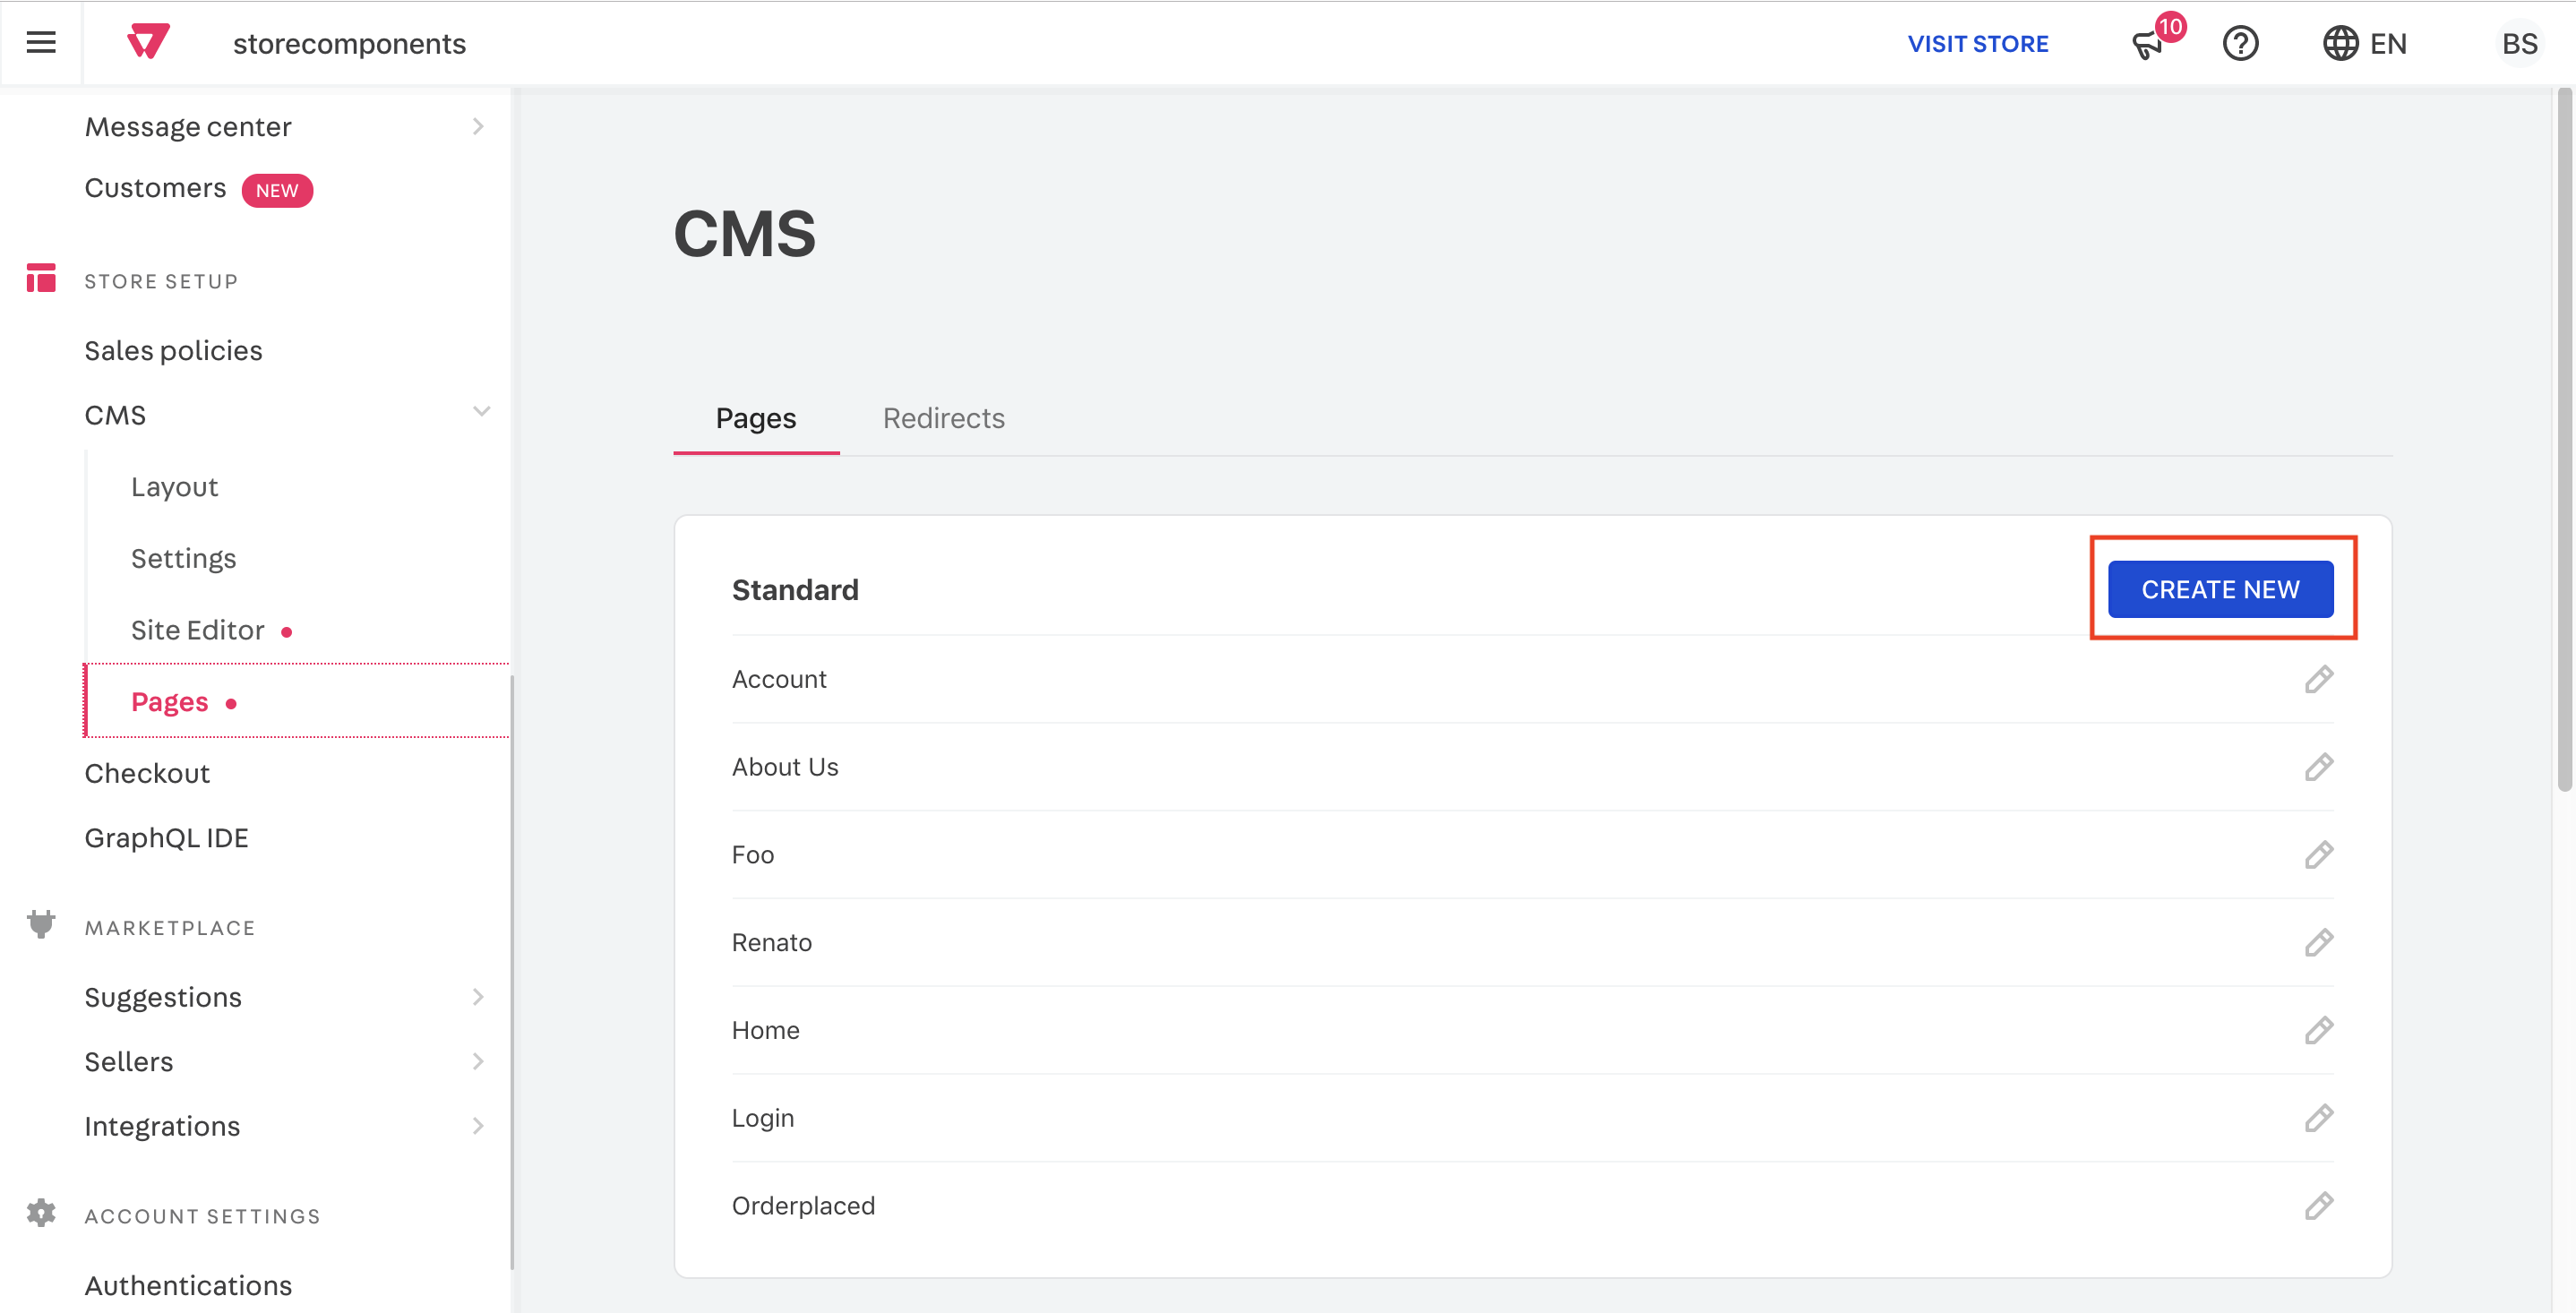 custom-pages-pages